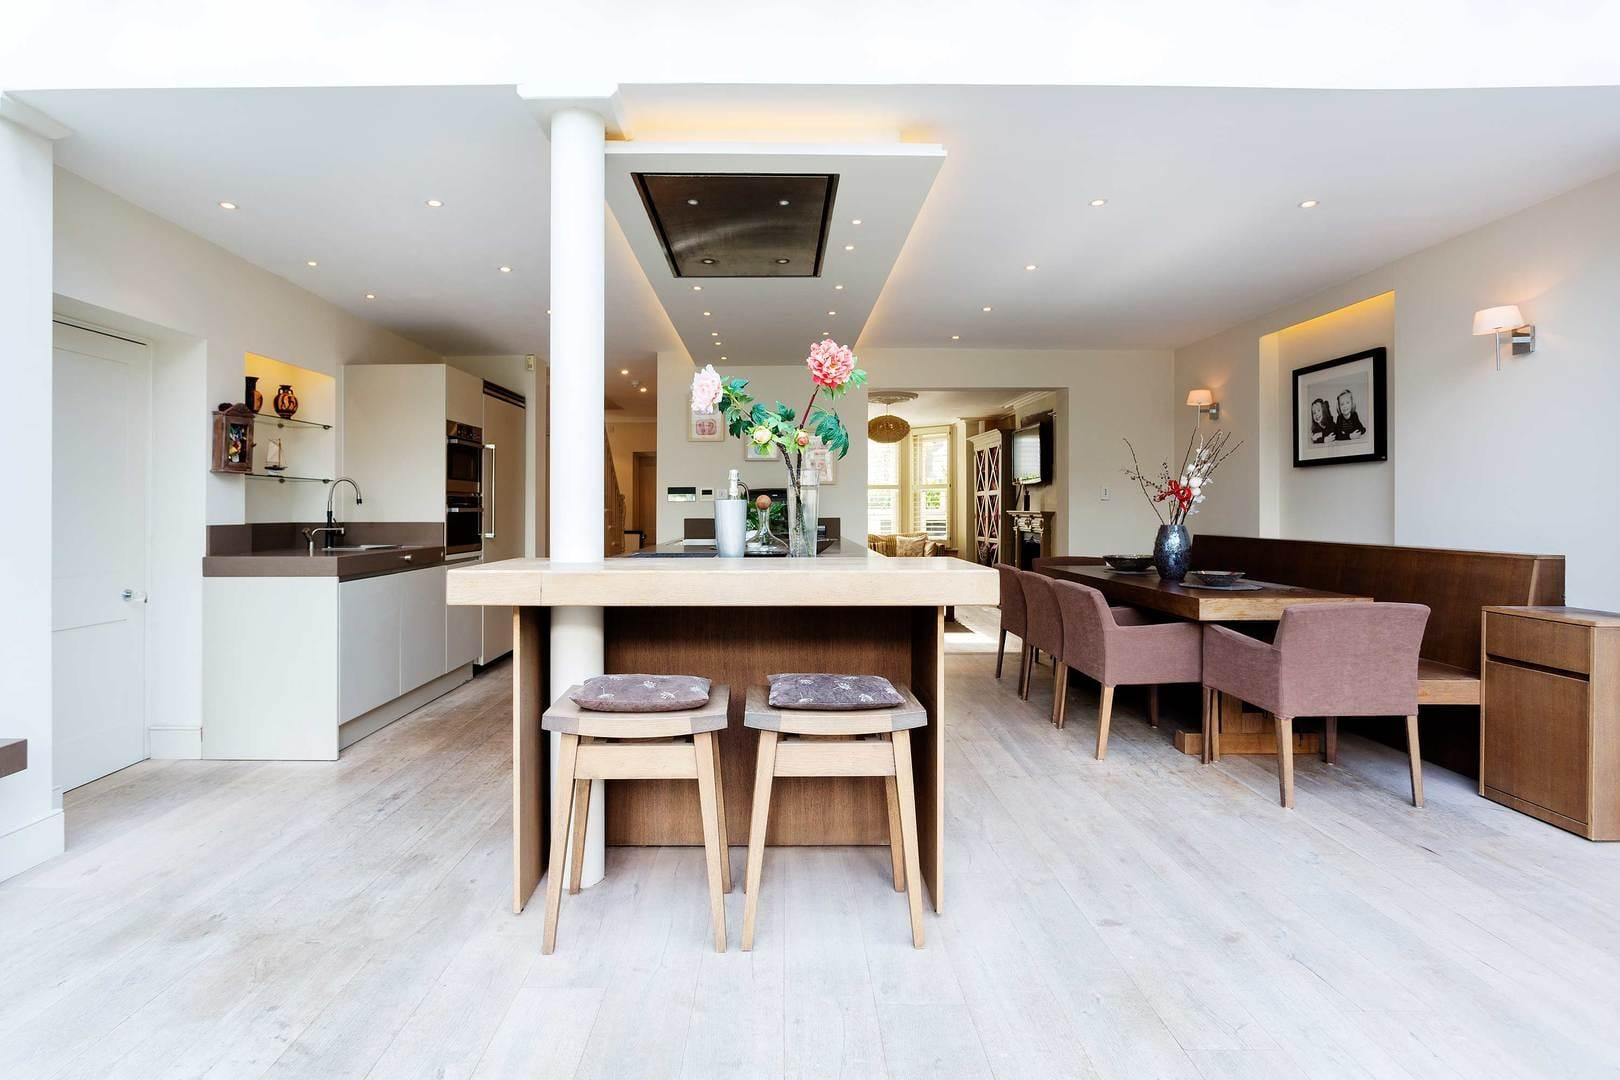 Property Image 1 - Opulent Stylish Clapham House with Large Kitchen area